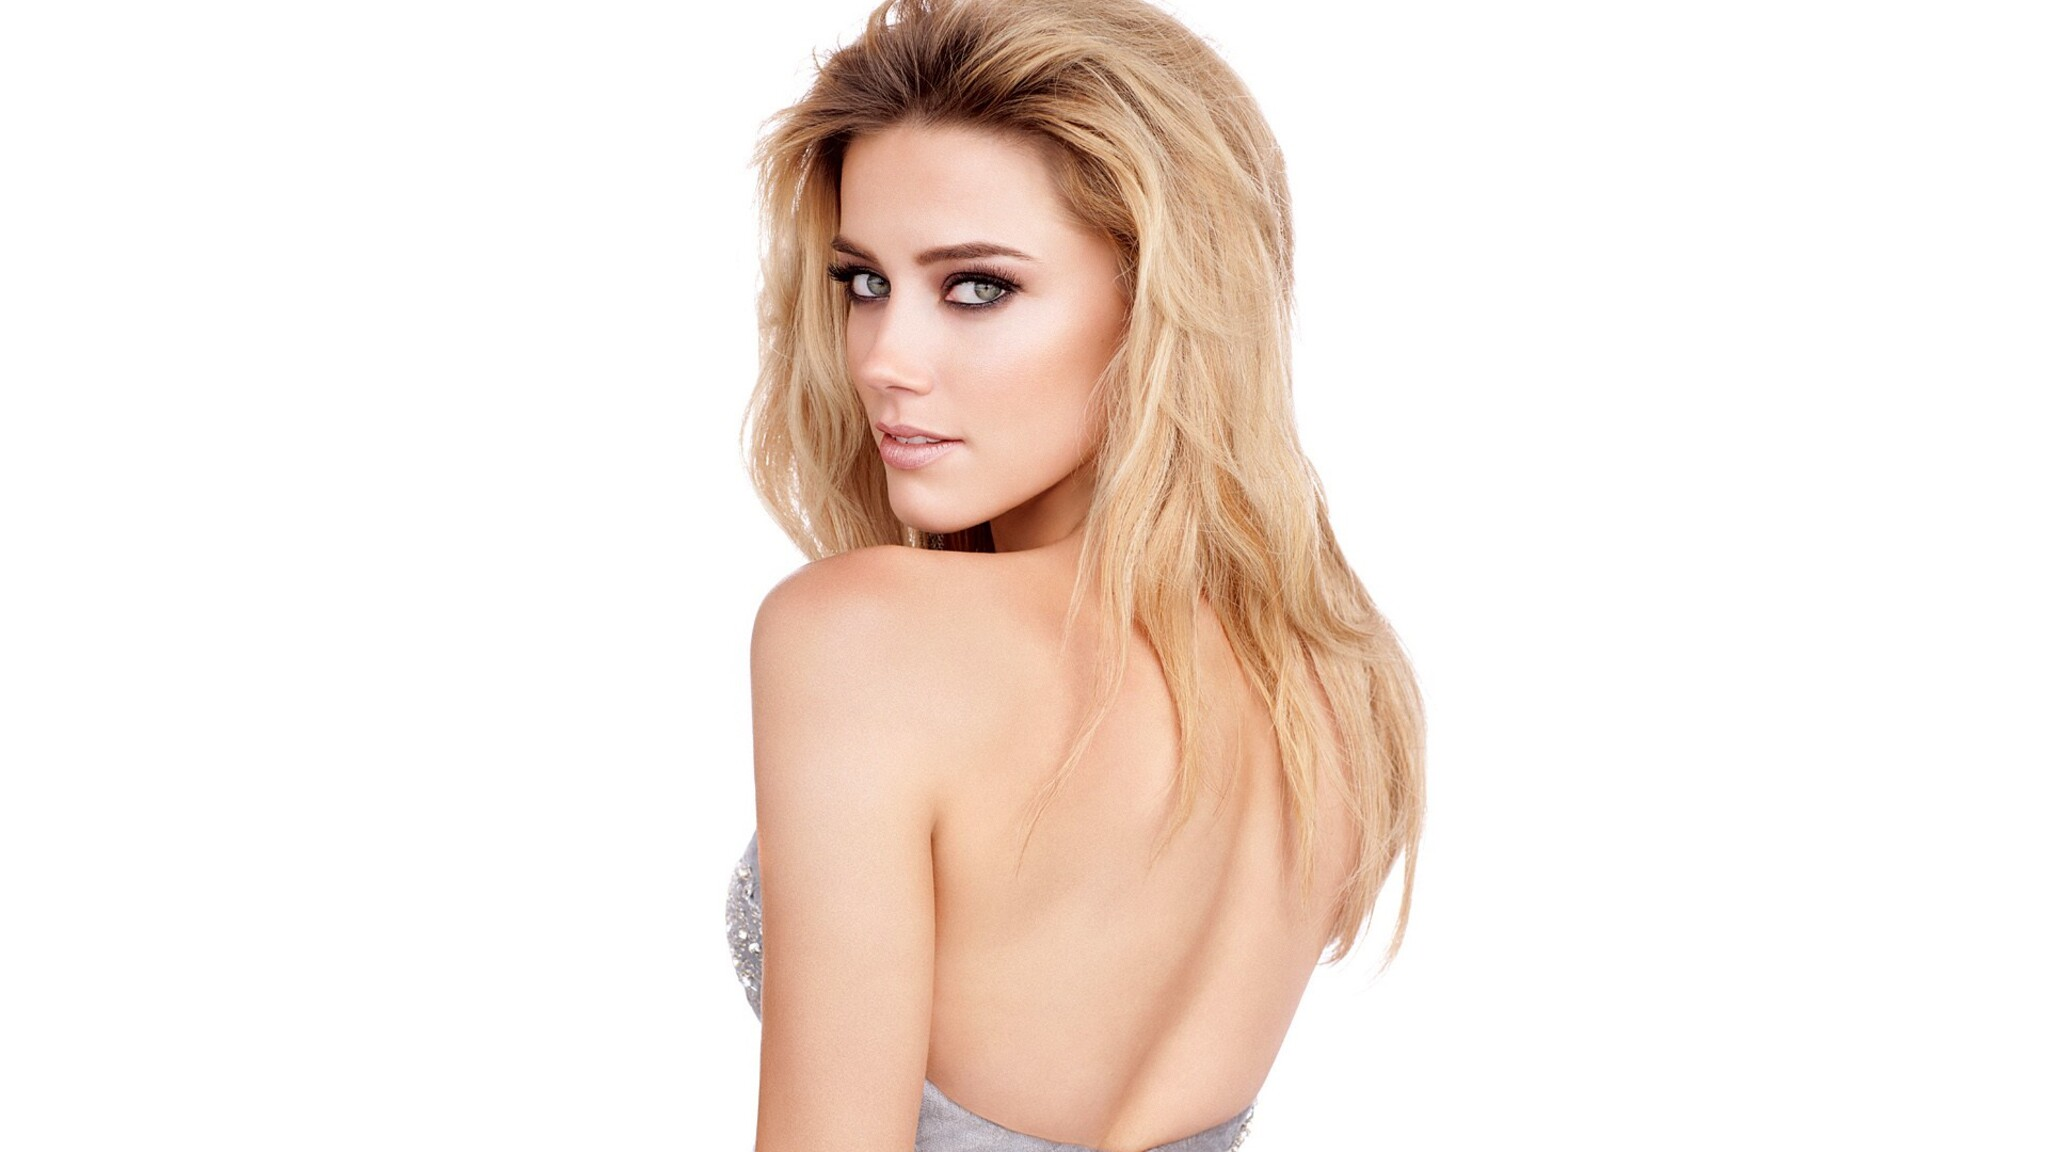 Amber Laura Heard h ɜːr d born April 22 1986 is an American actress She made her film debut in 2004 in the sports drama Friday Night Lights